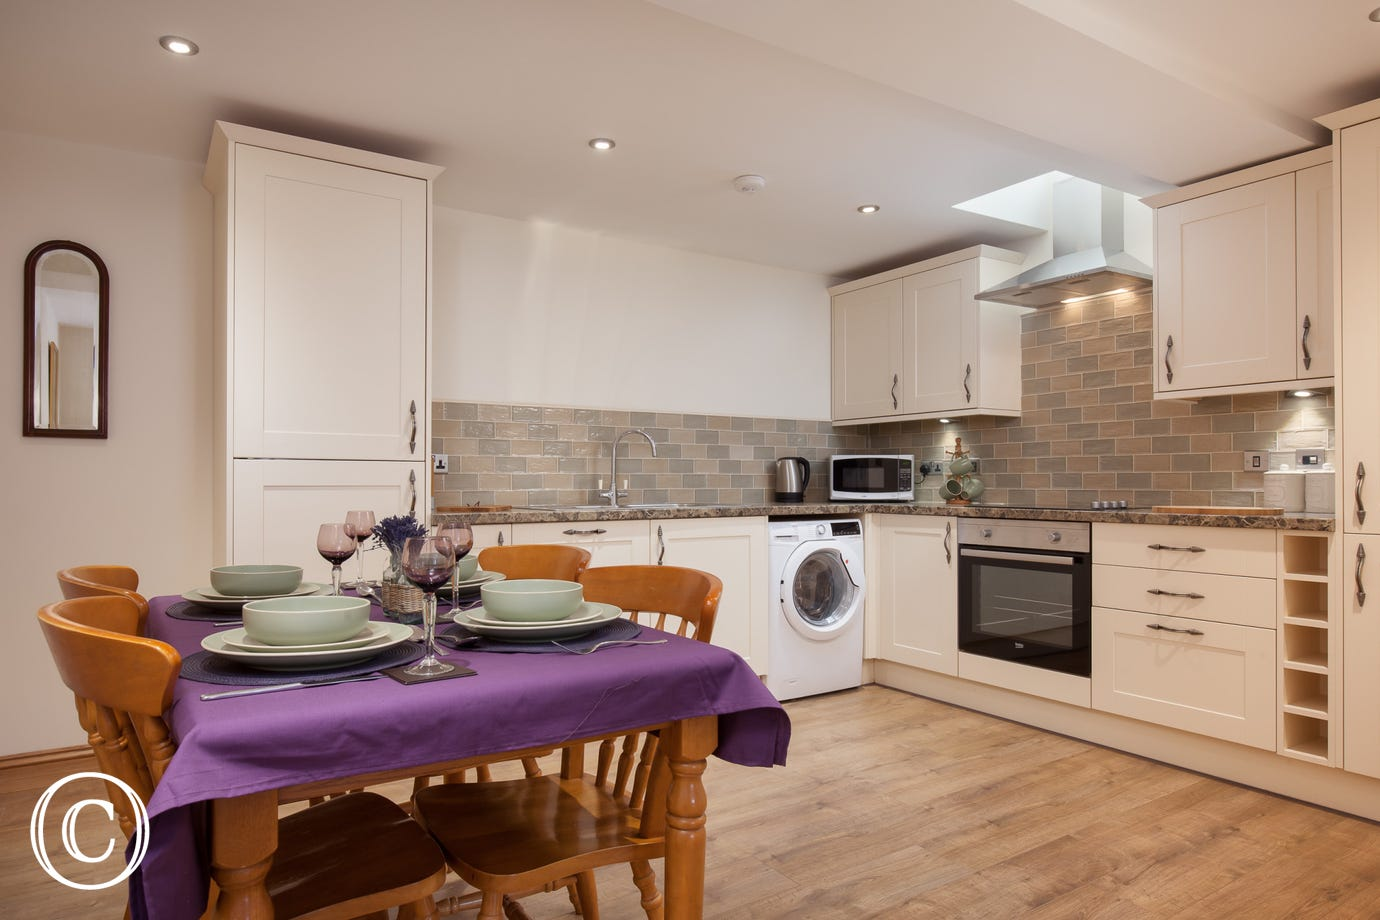 modern kitchen diner, perfect for entertaining and family meals in Torquay Self-Catering